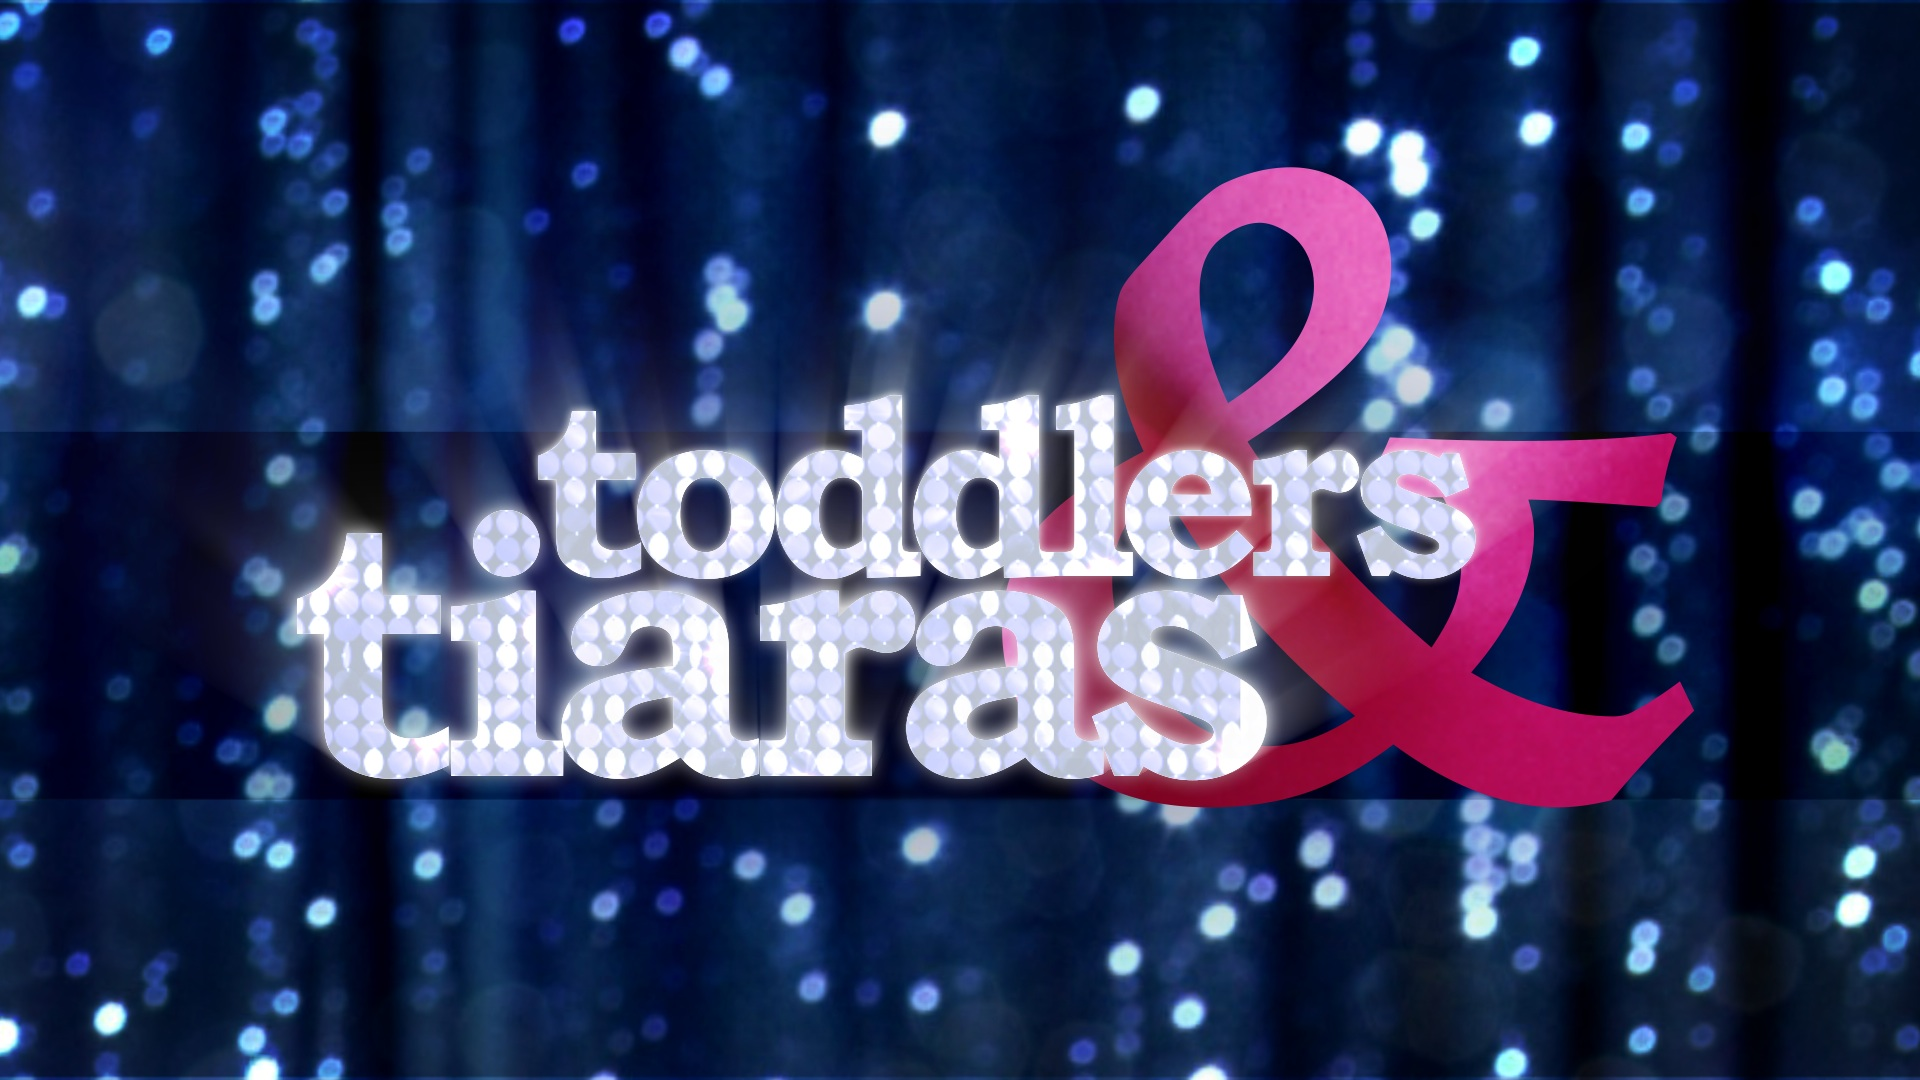 main title design | Toddlers & Tiaras | jonberrydesign